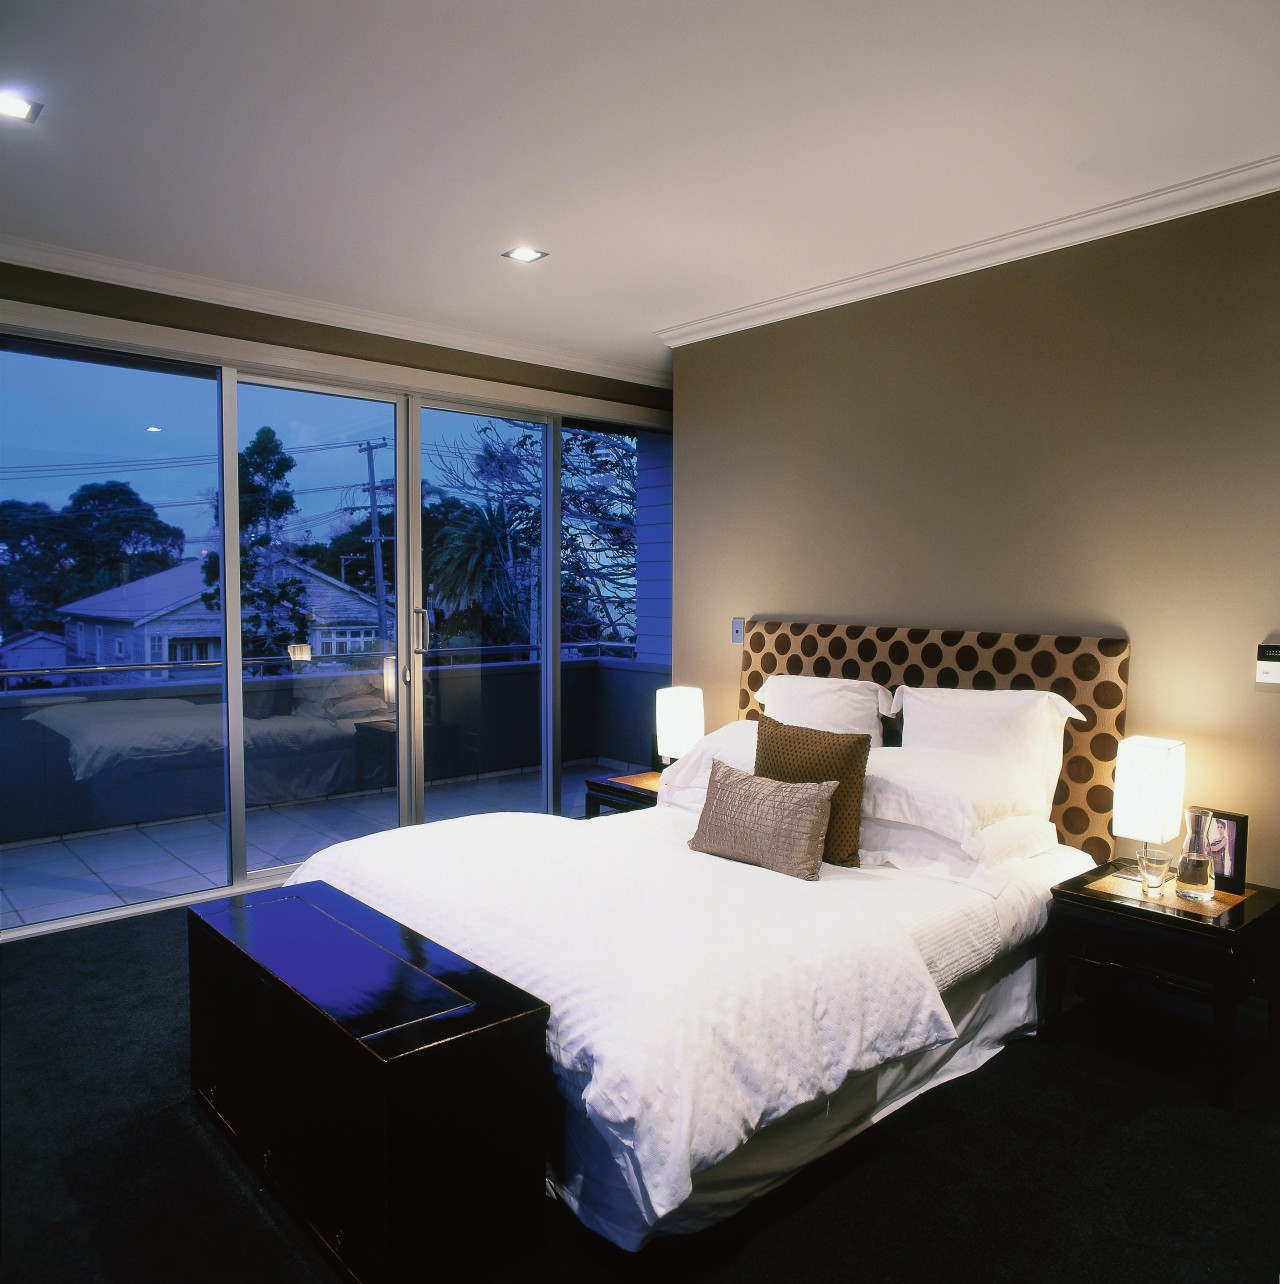 View of the bedroom architecture, bed frame, bedroom, ceiling, home, interior design, lighting, mattress, property, real estate, room, suite, wall, gray, black